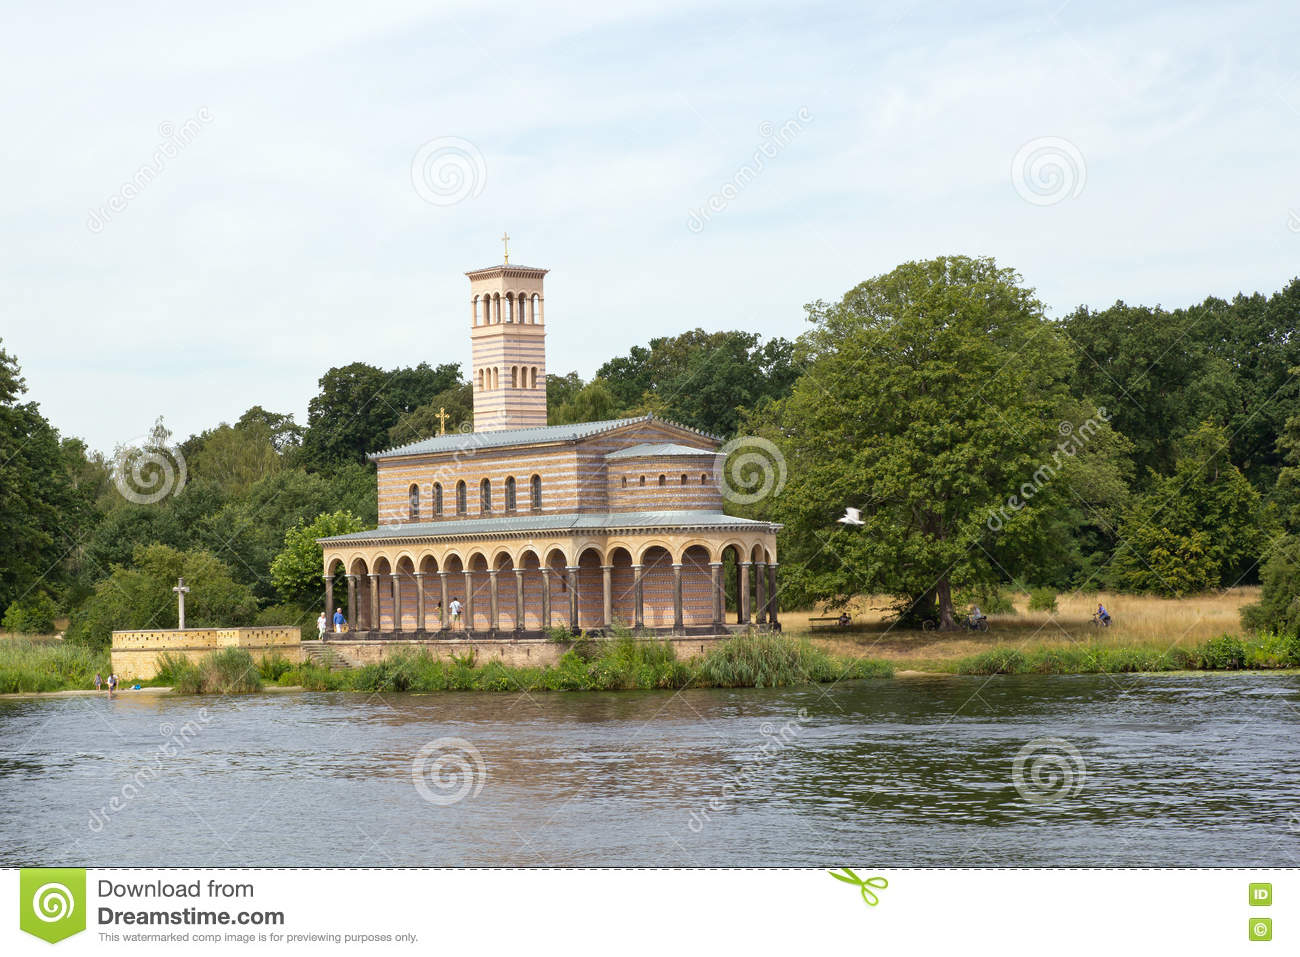 Germany, Berlin, Wannsee, Church